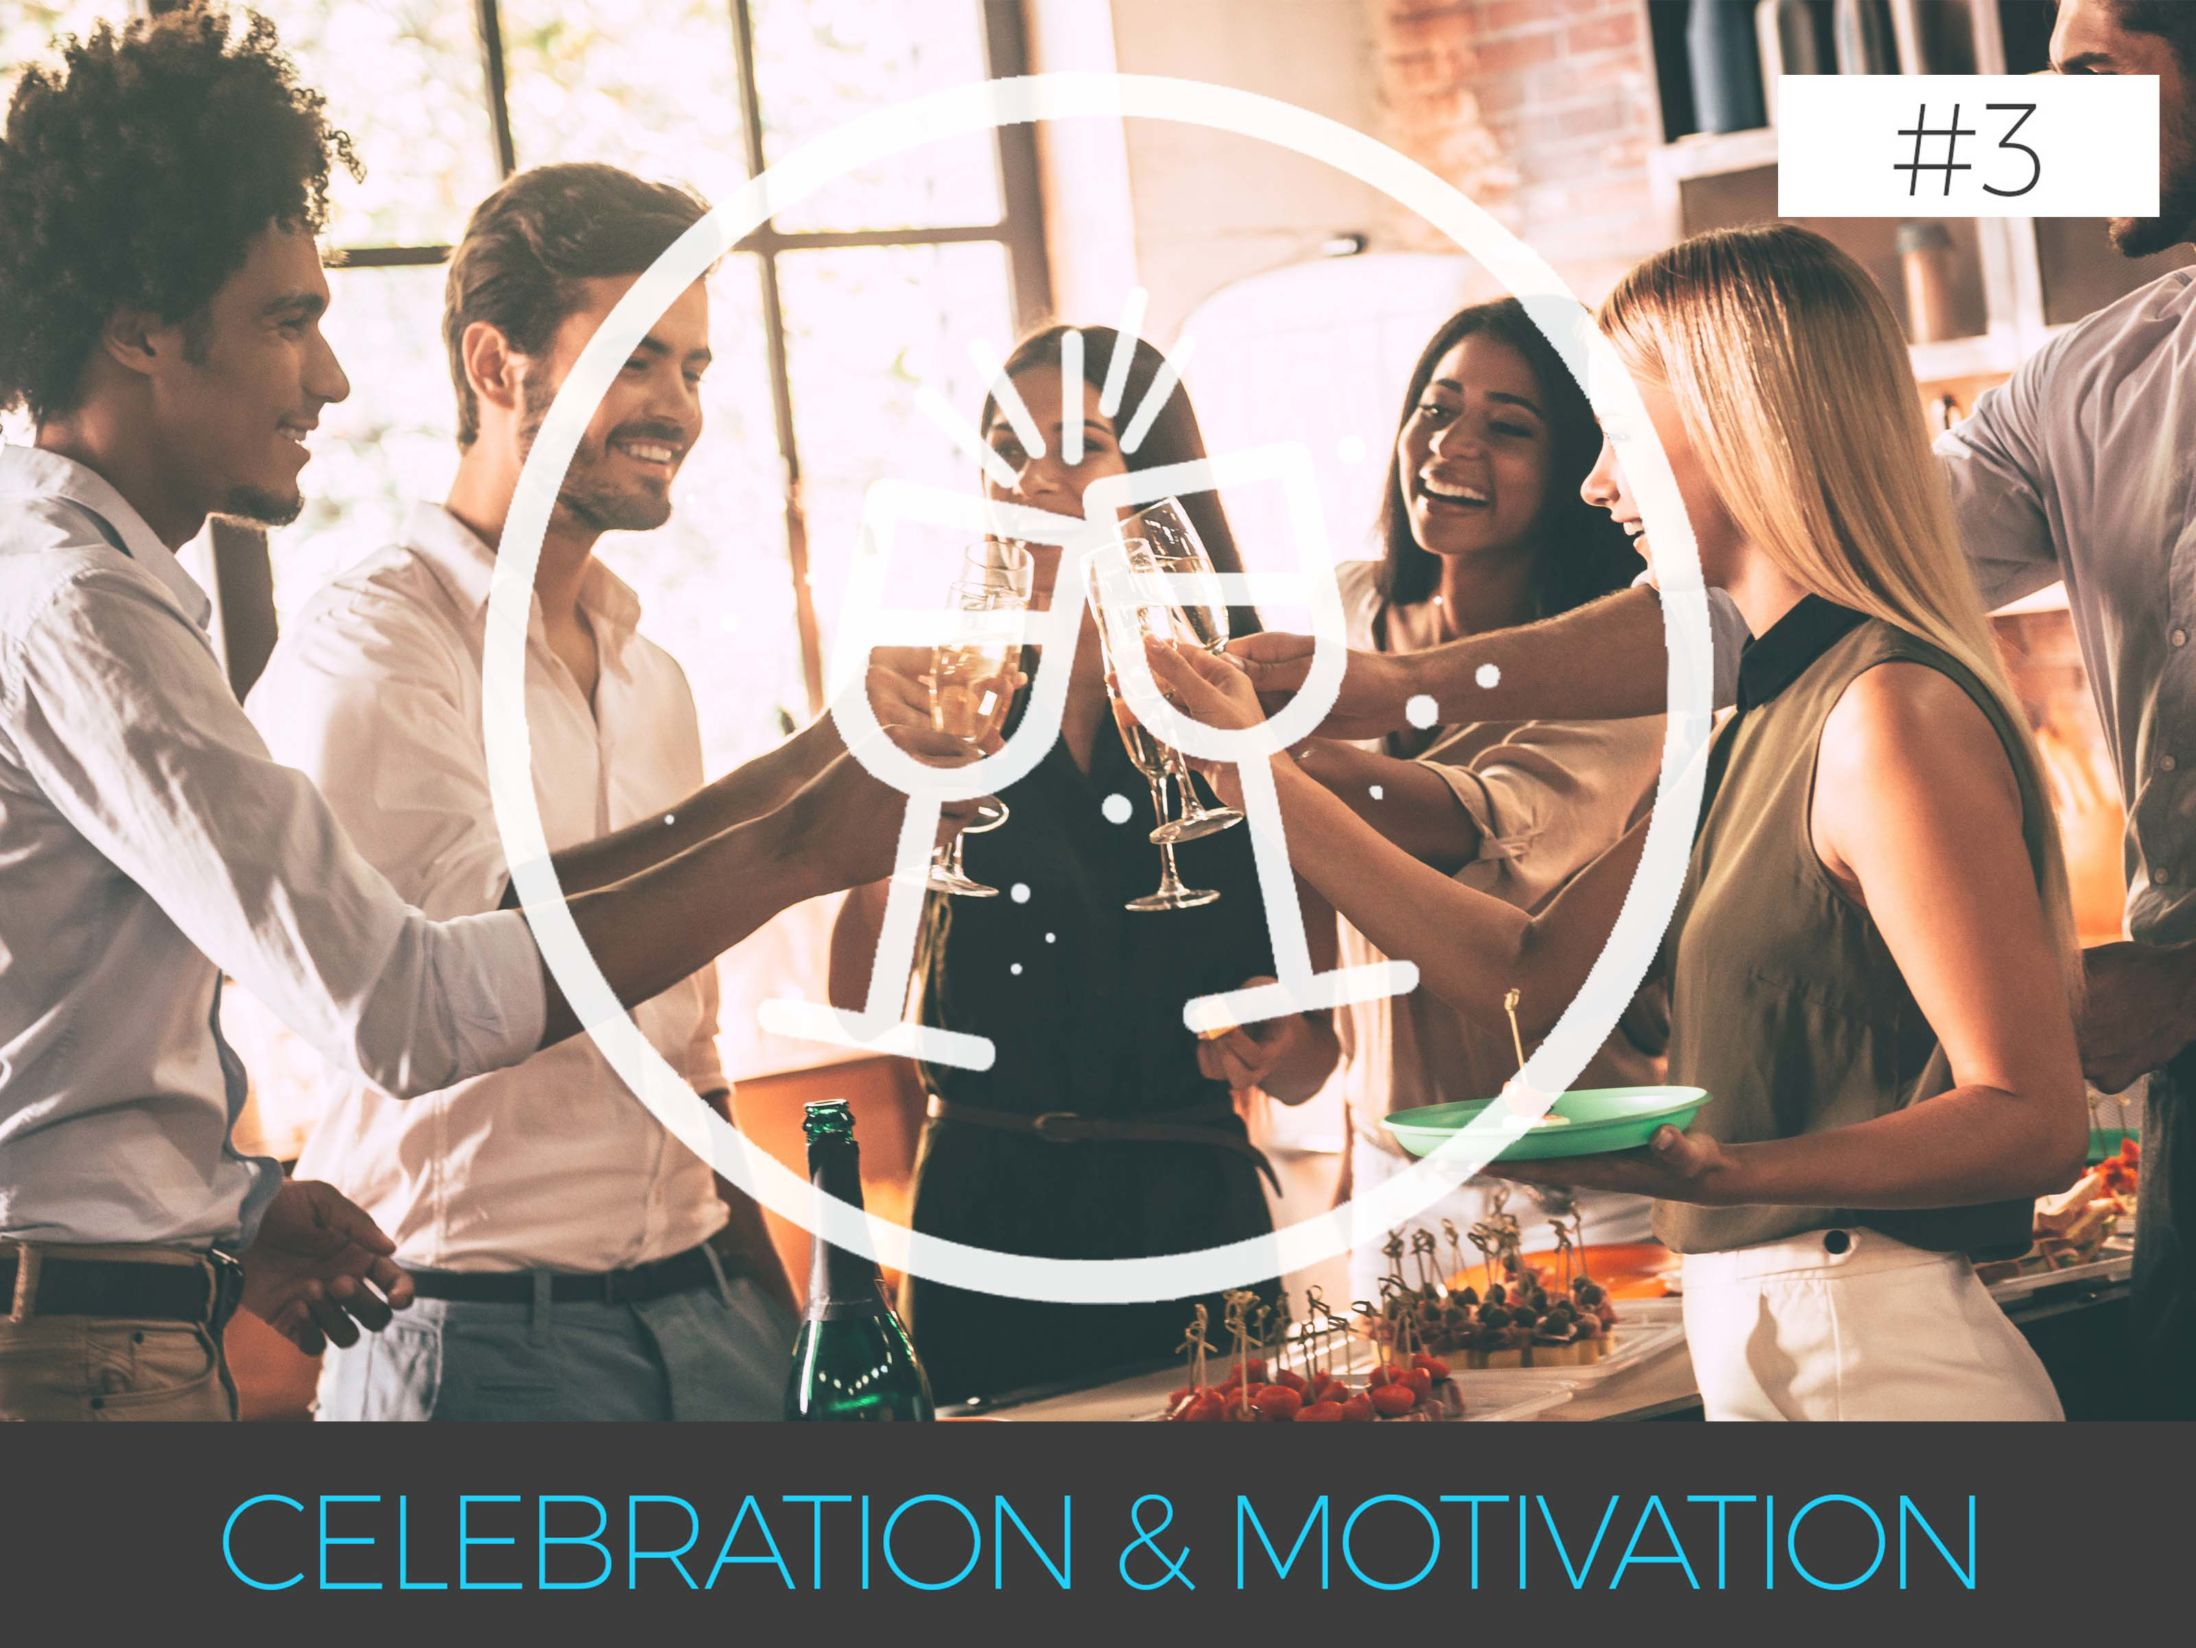 Why is Team Building so Important - 3. Celebration & Motivation